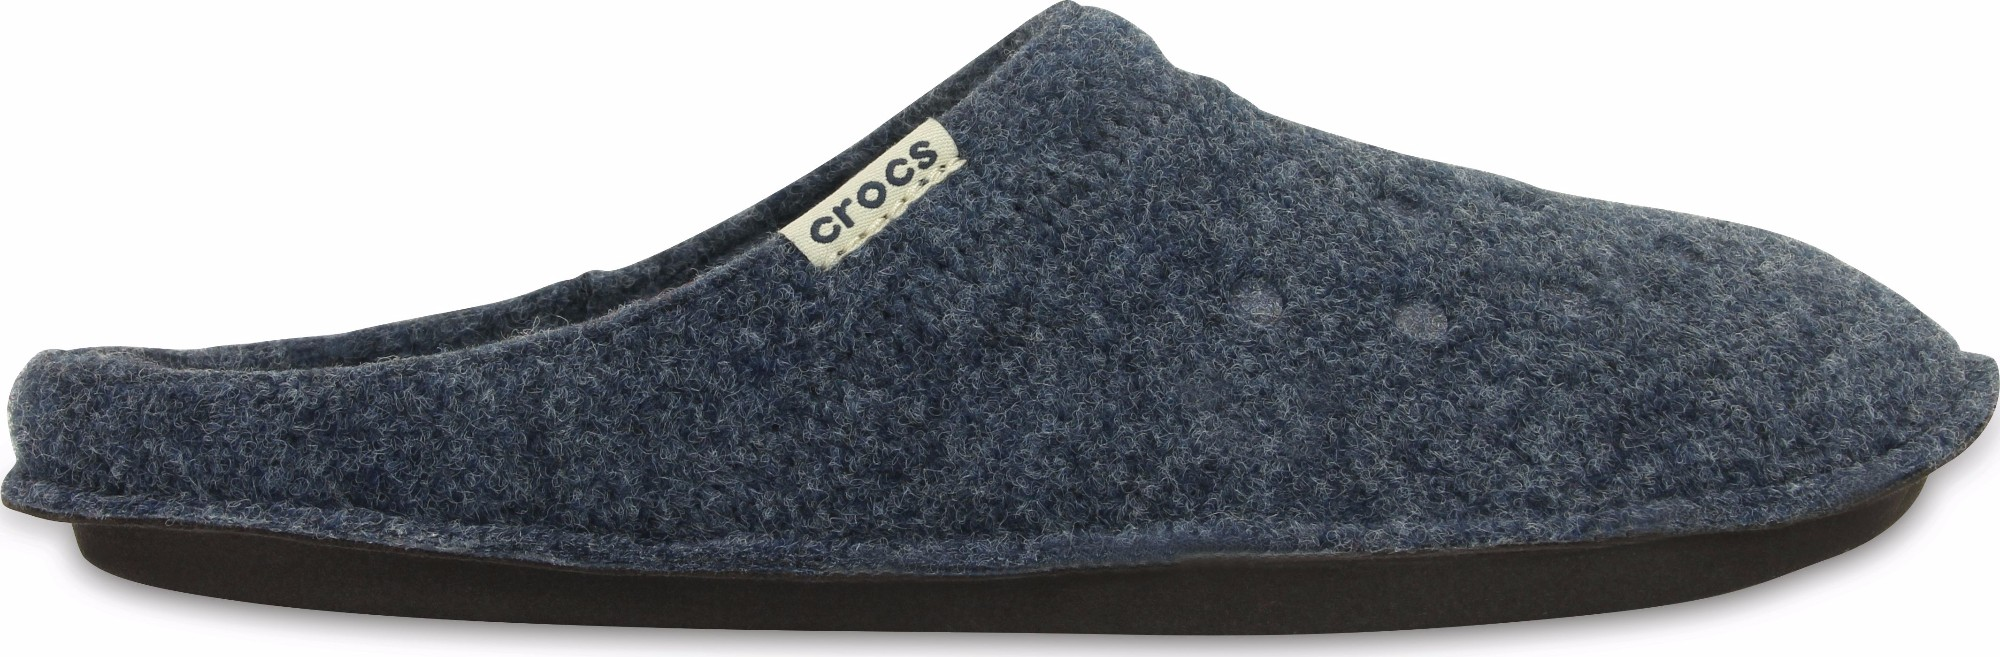 Crocs™ Classic Slipper Nautical Navy/Oatmeal 39,5